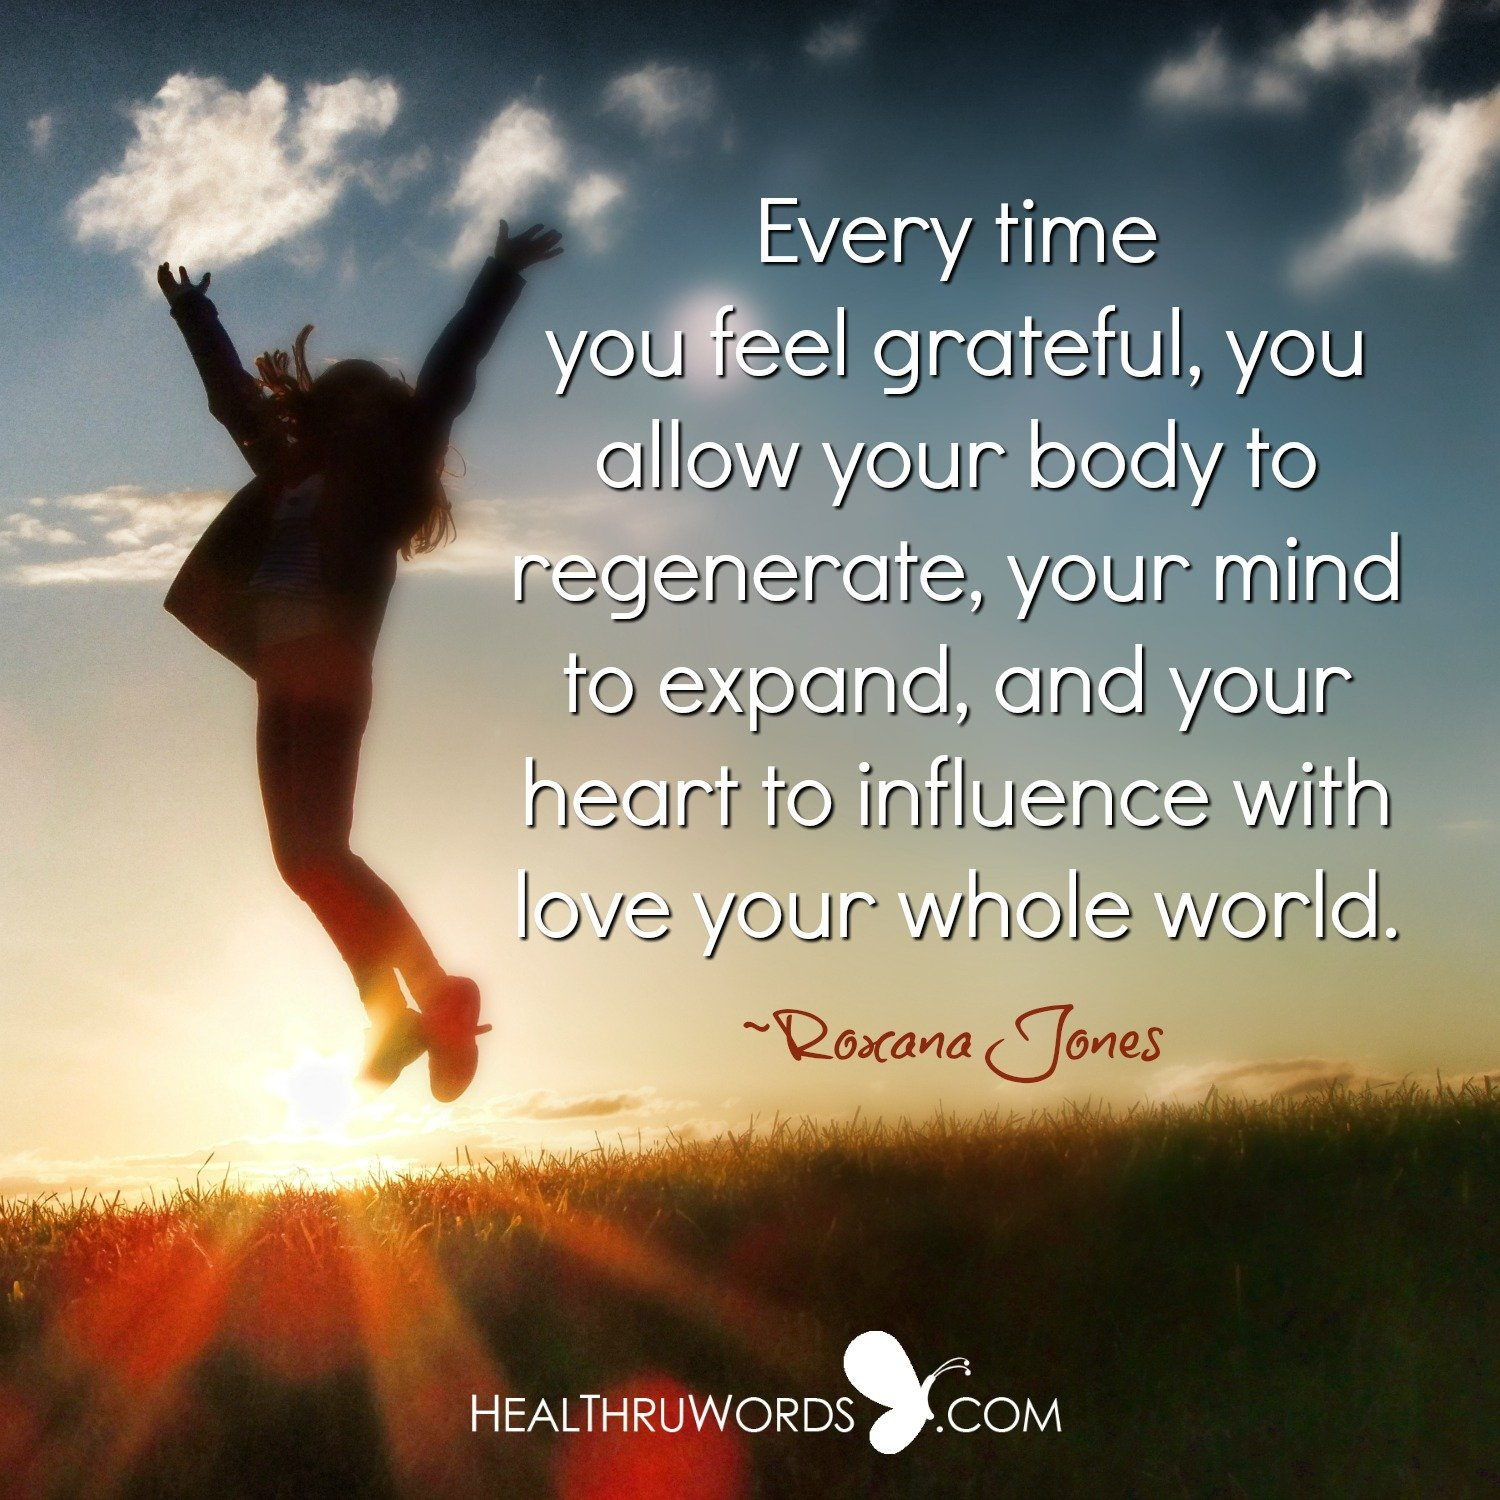 Healthruwords.com_-_Inspirational_Images_-_The-Effects-of-Gratitude.jpg